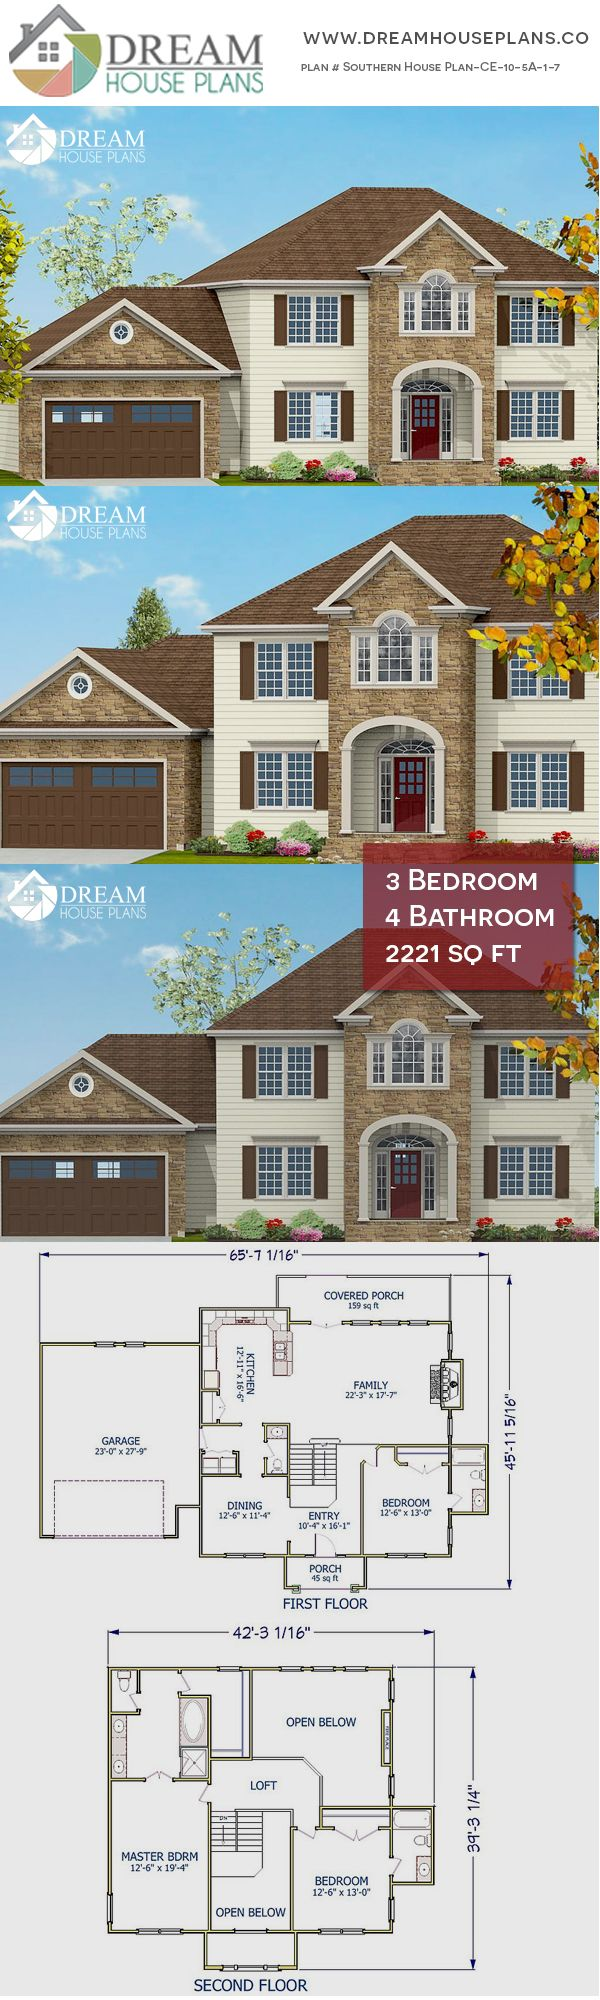 dream house plans affordable southern family 3 bedroom 2221 sq ft rh pinterest com